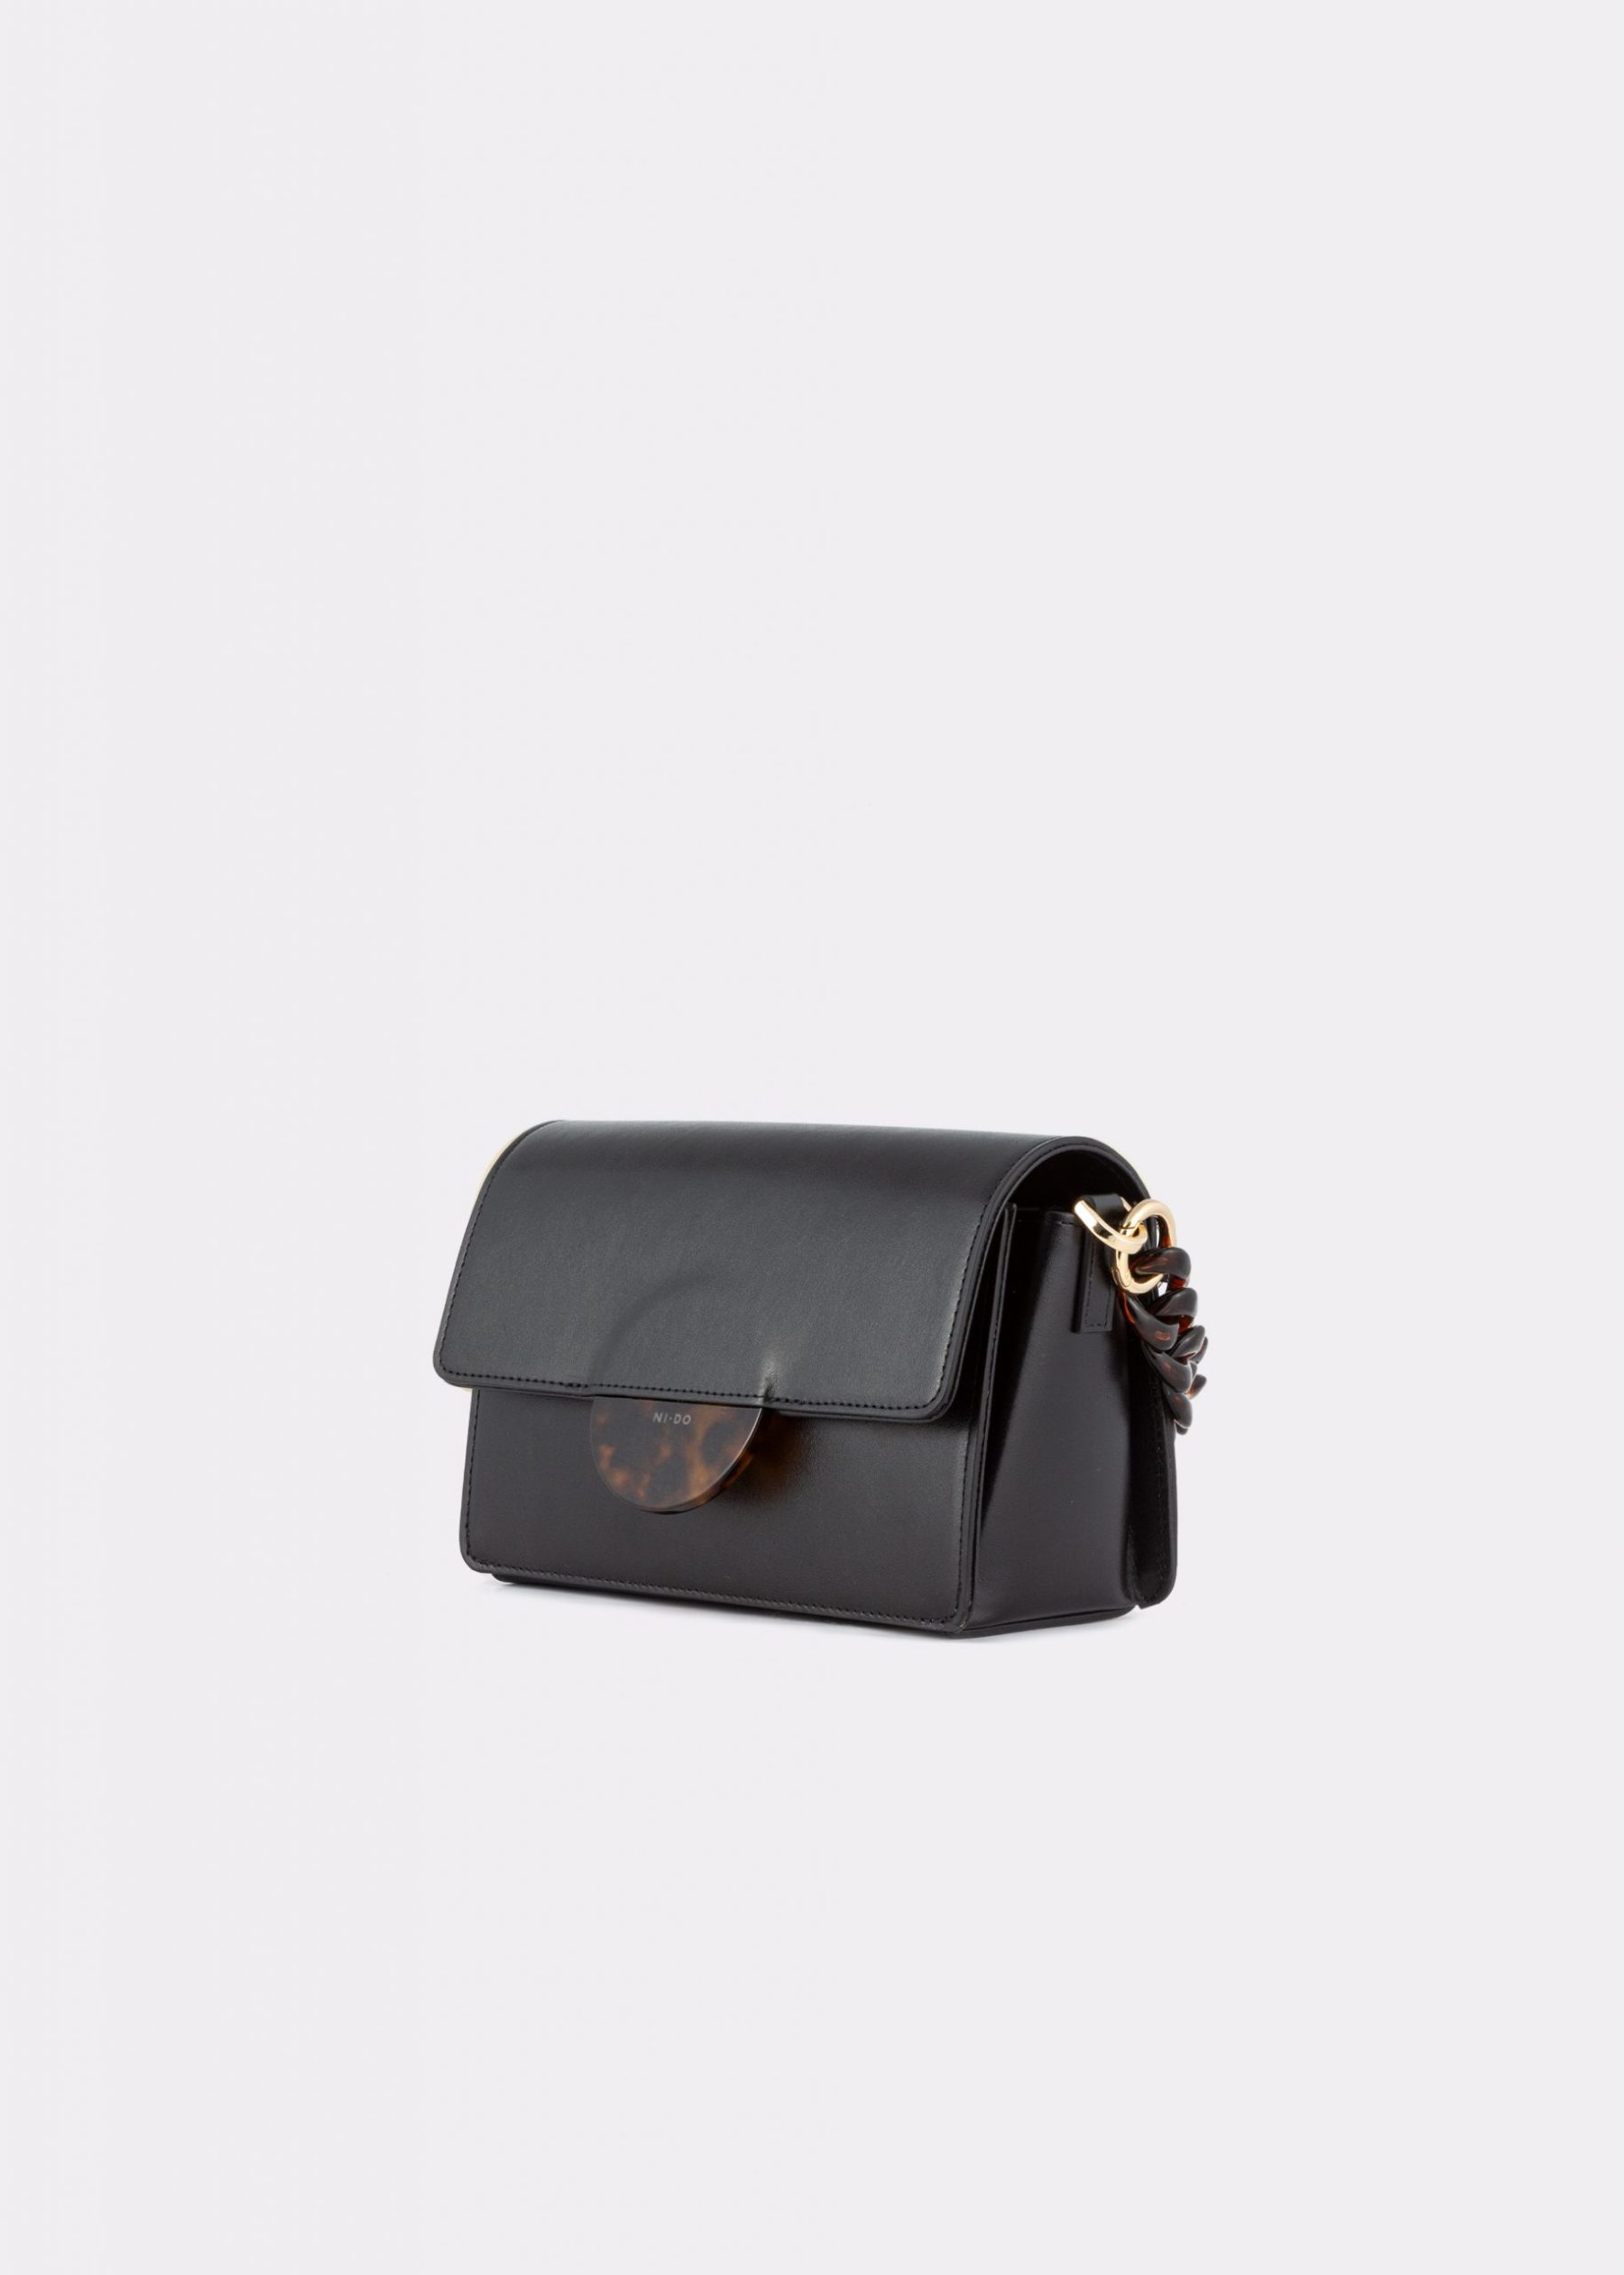 NIDO Cuore Mini bag Black side view